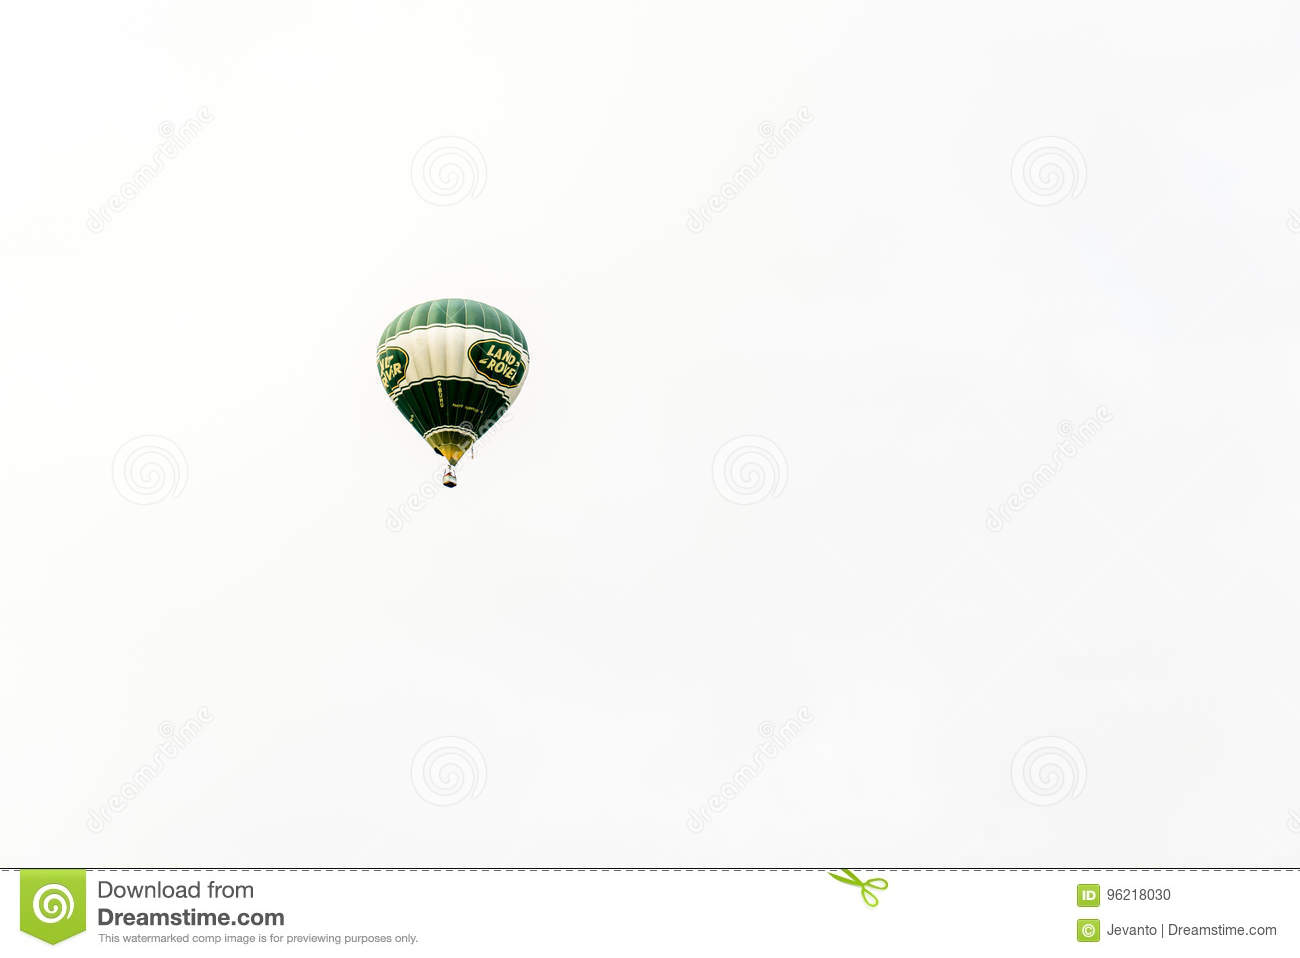 Racecourse, Northampton, England, UK - July 01: Hot-air balloon with Land Rover logo flying over Northampton Town